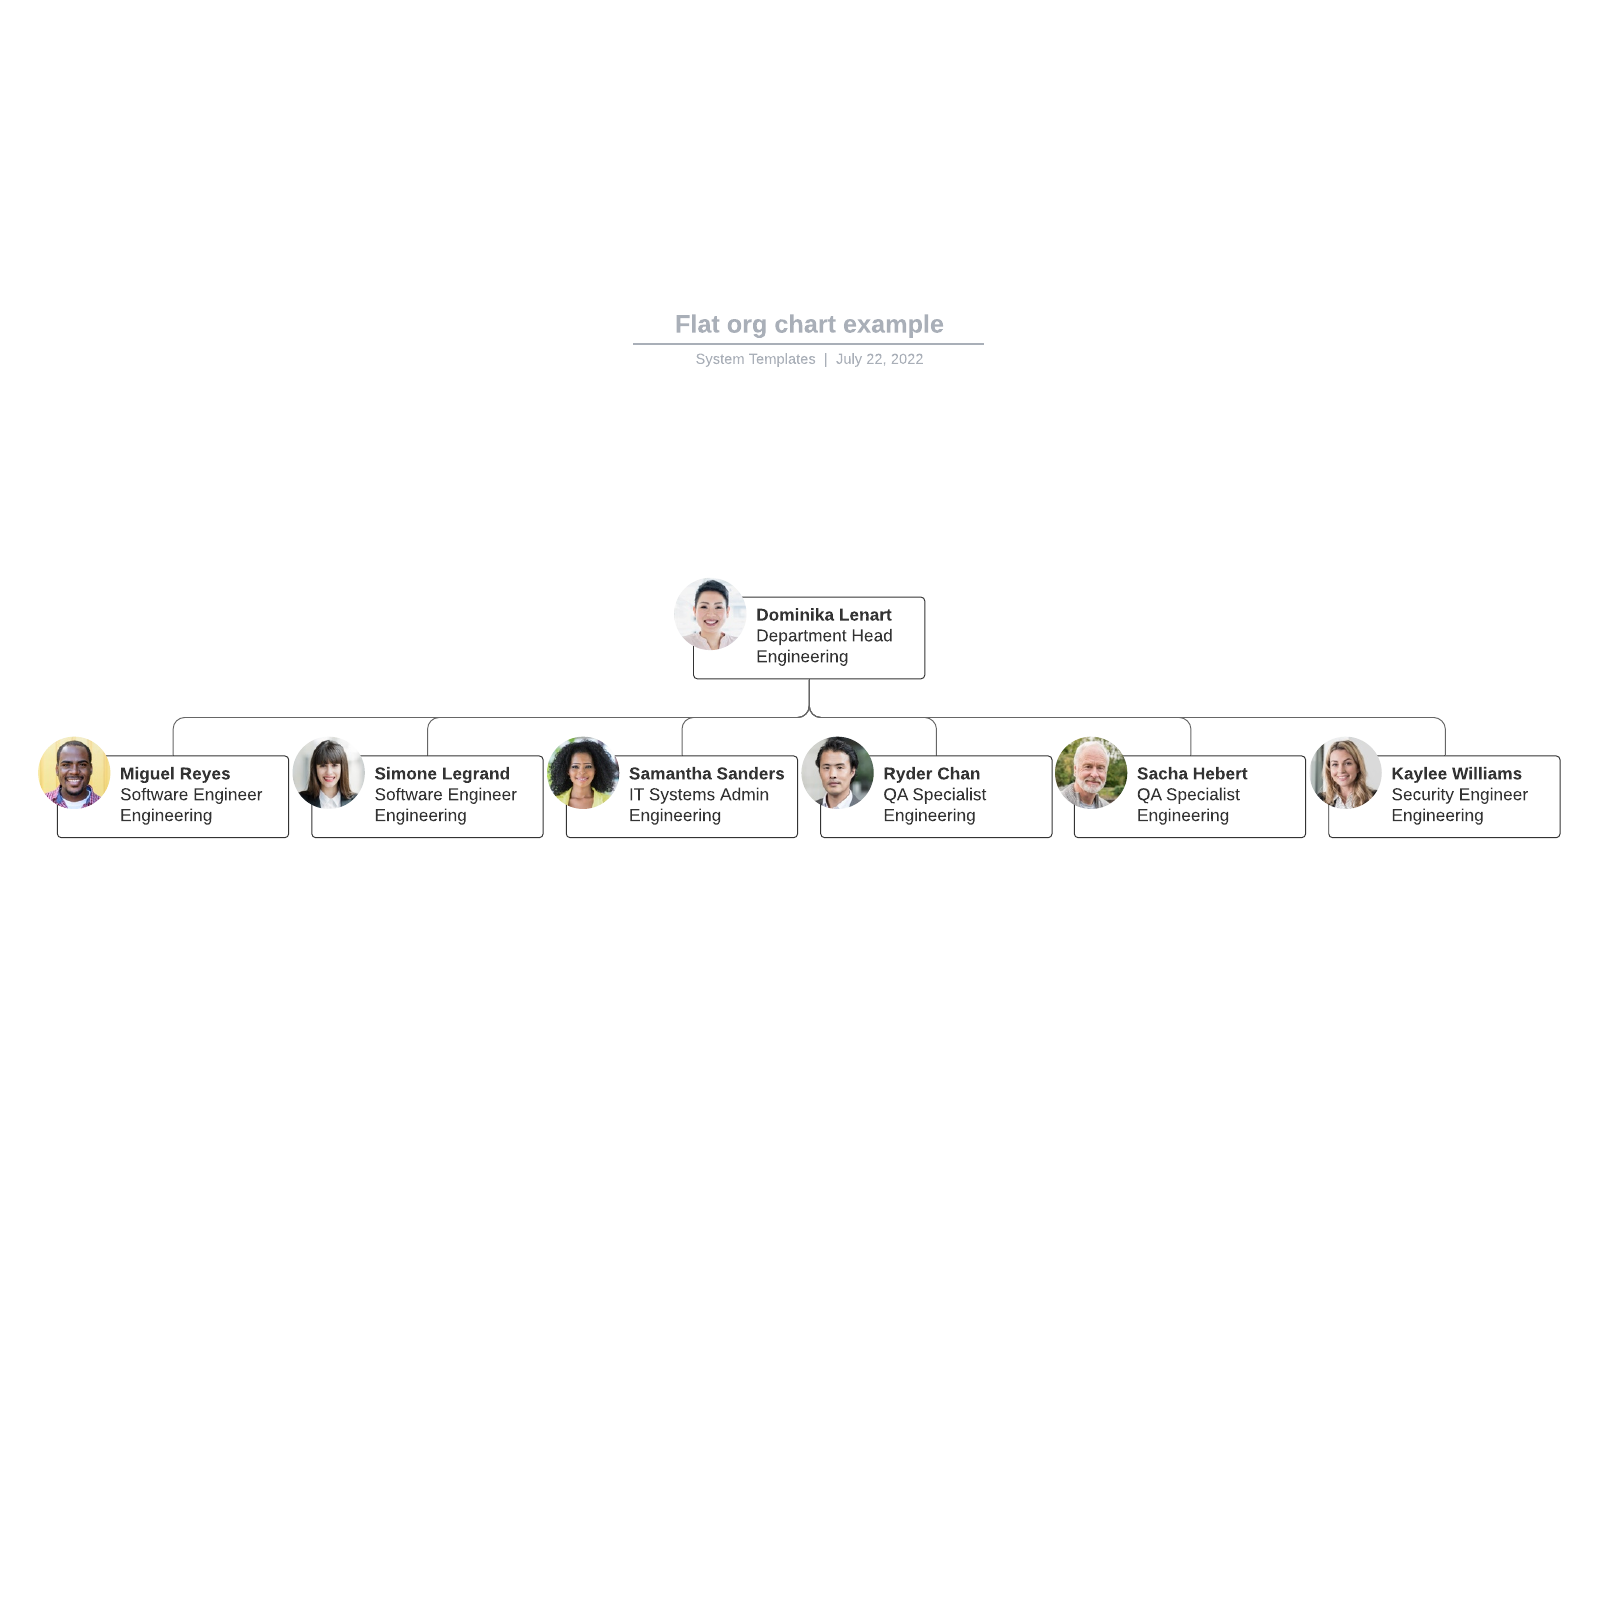 Flat org chart example